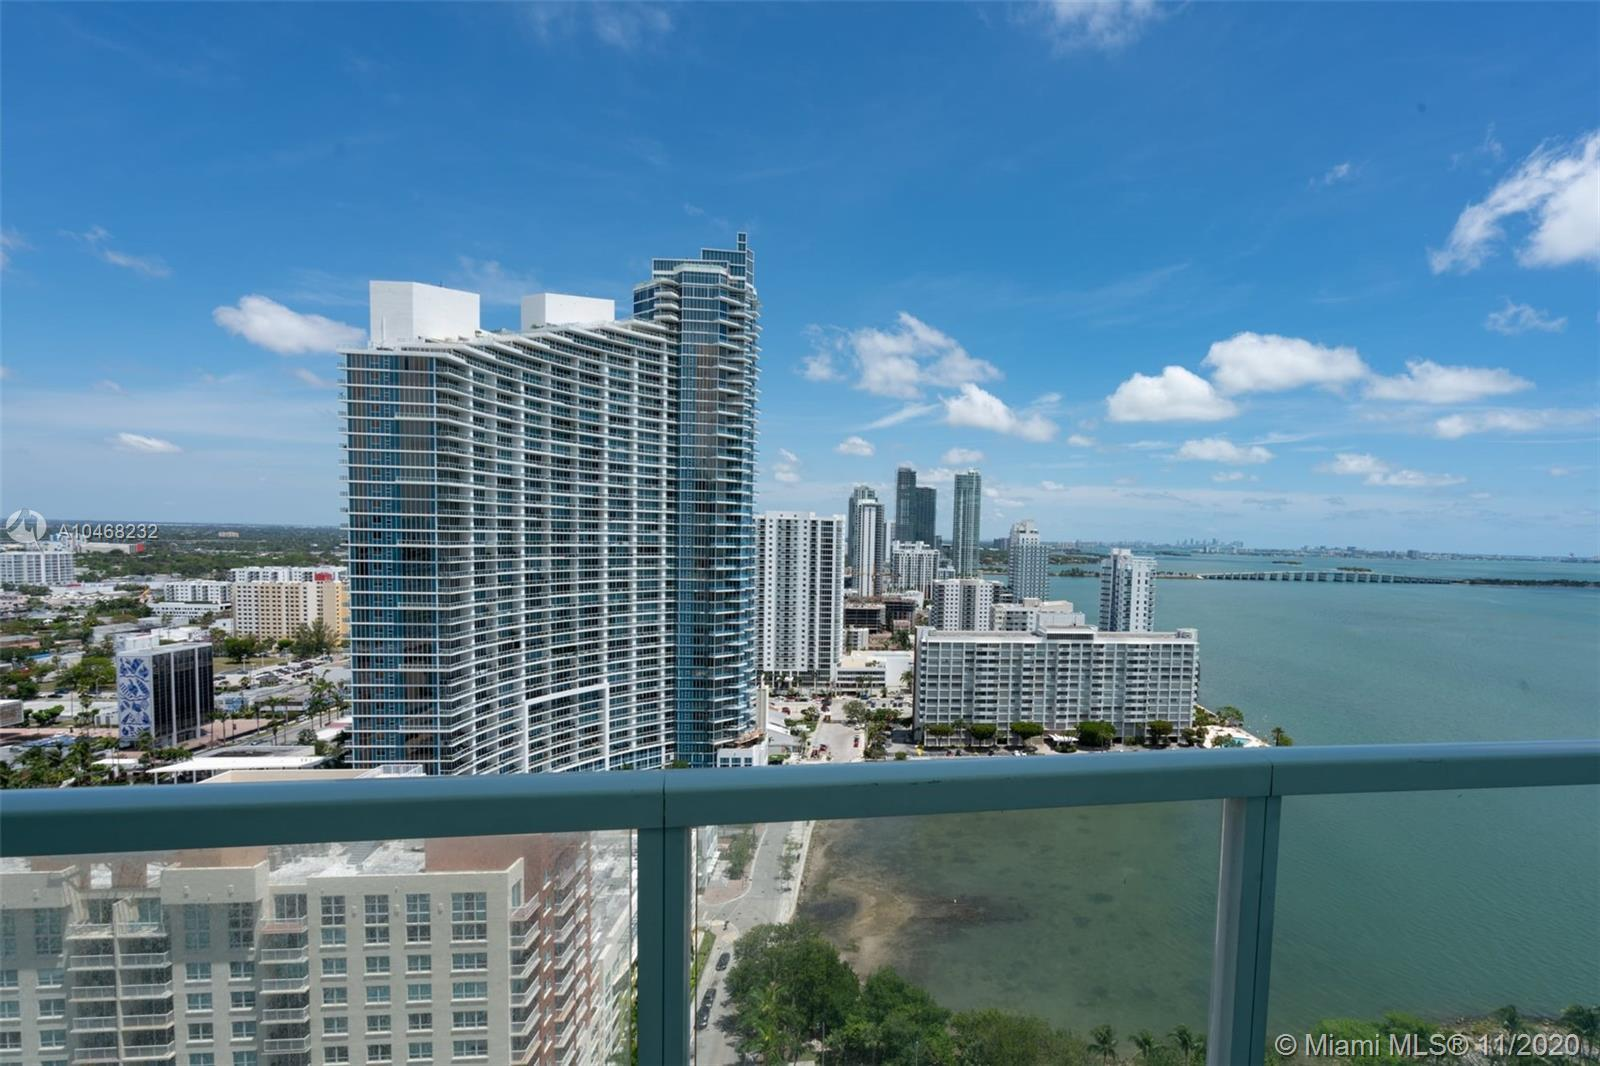 2 bedroom 2 bath Split floorplan. Great views of bay and city. Upgraded Porcelain tile throughout un